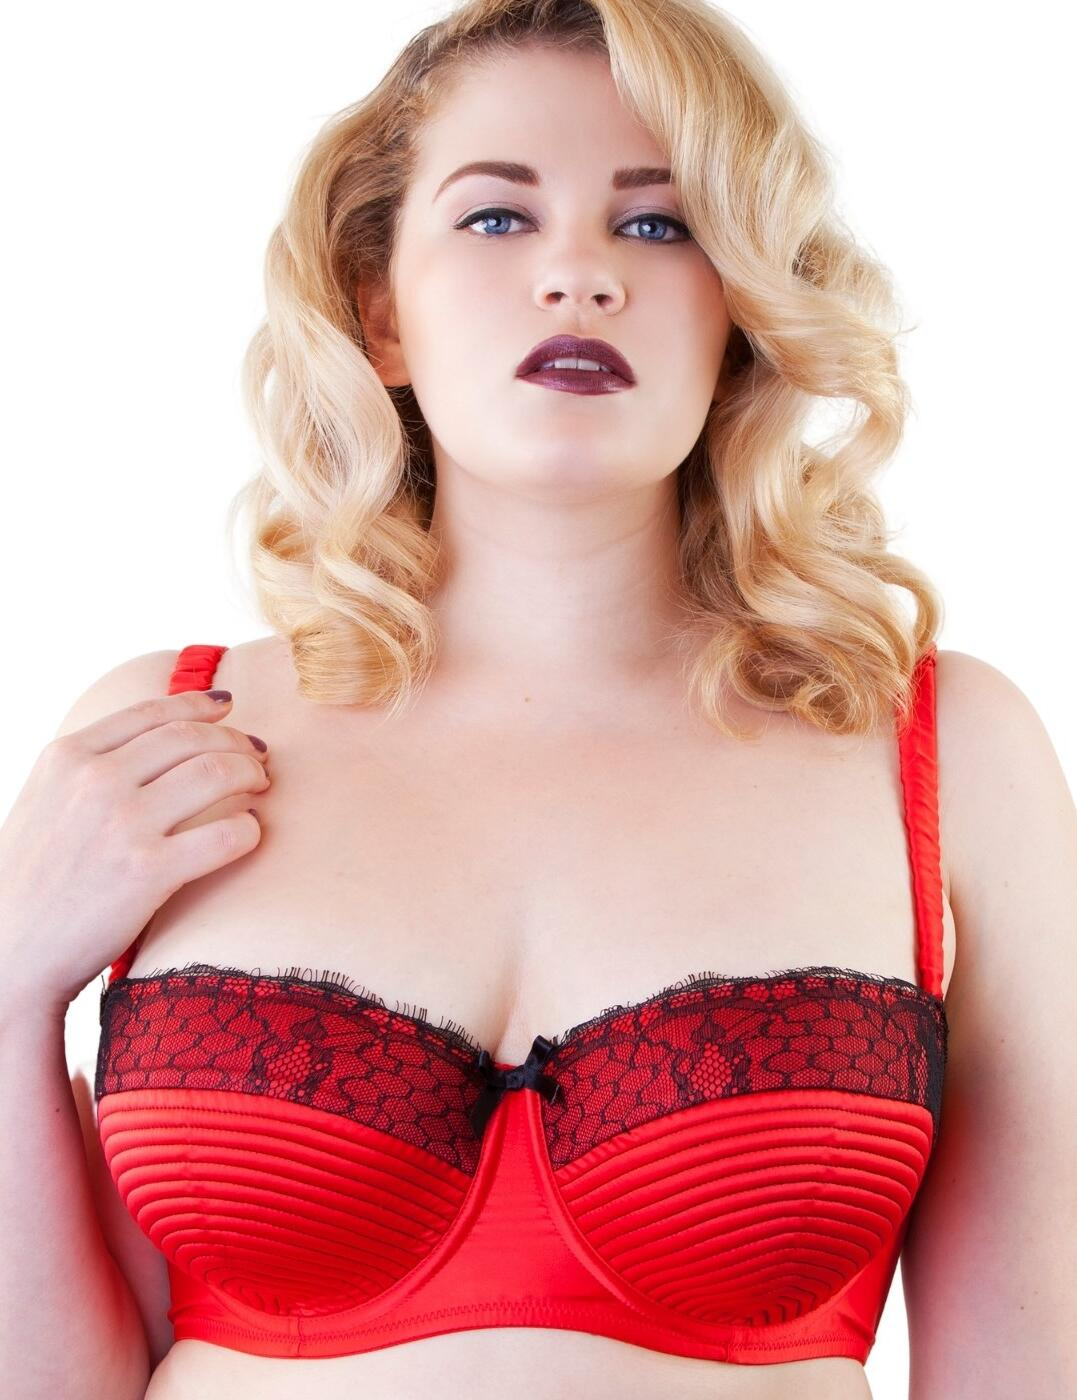 PPCC101R Playful Promises Portia Full Cup Bra - PPCC101R Flame Red